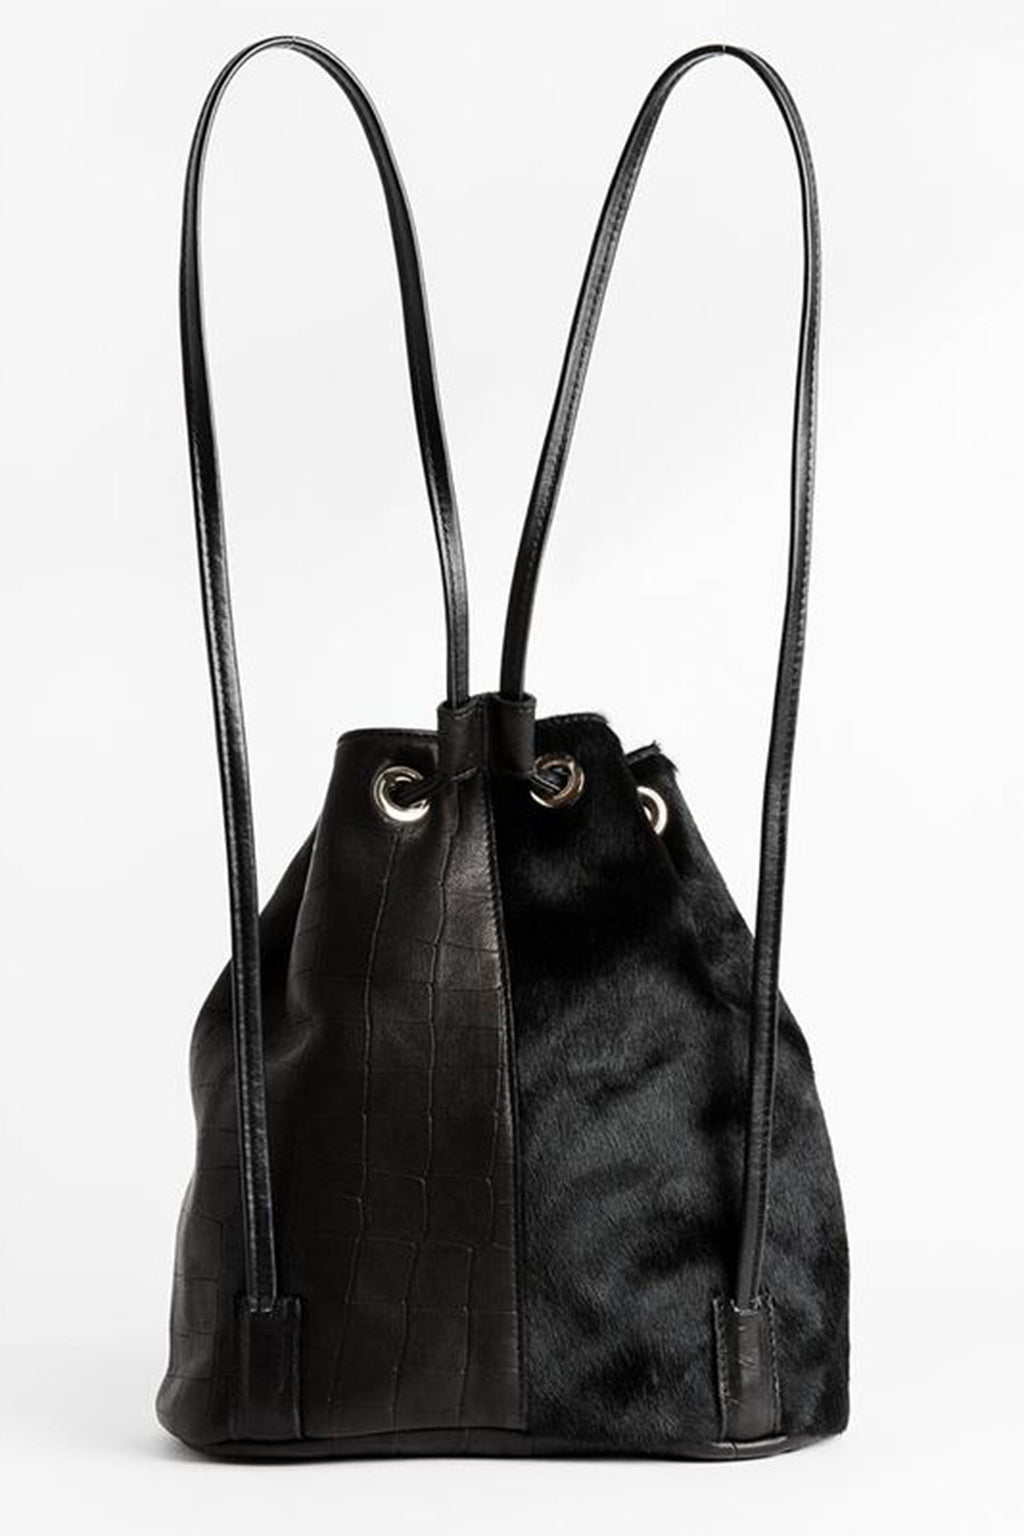 J. LOWERY | Scott Backpack - Black Croc